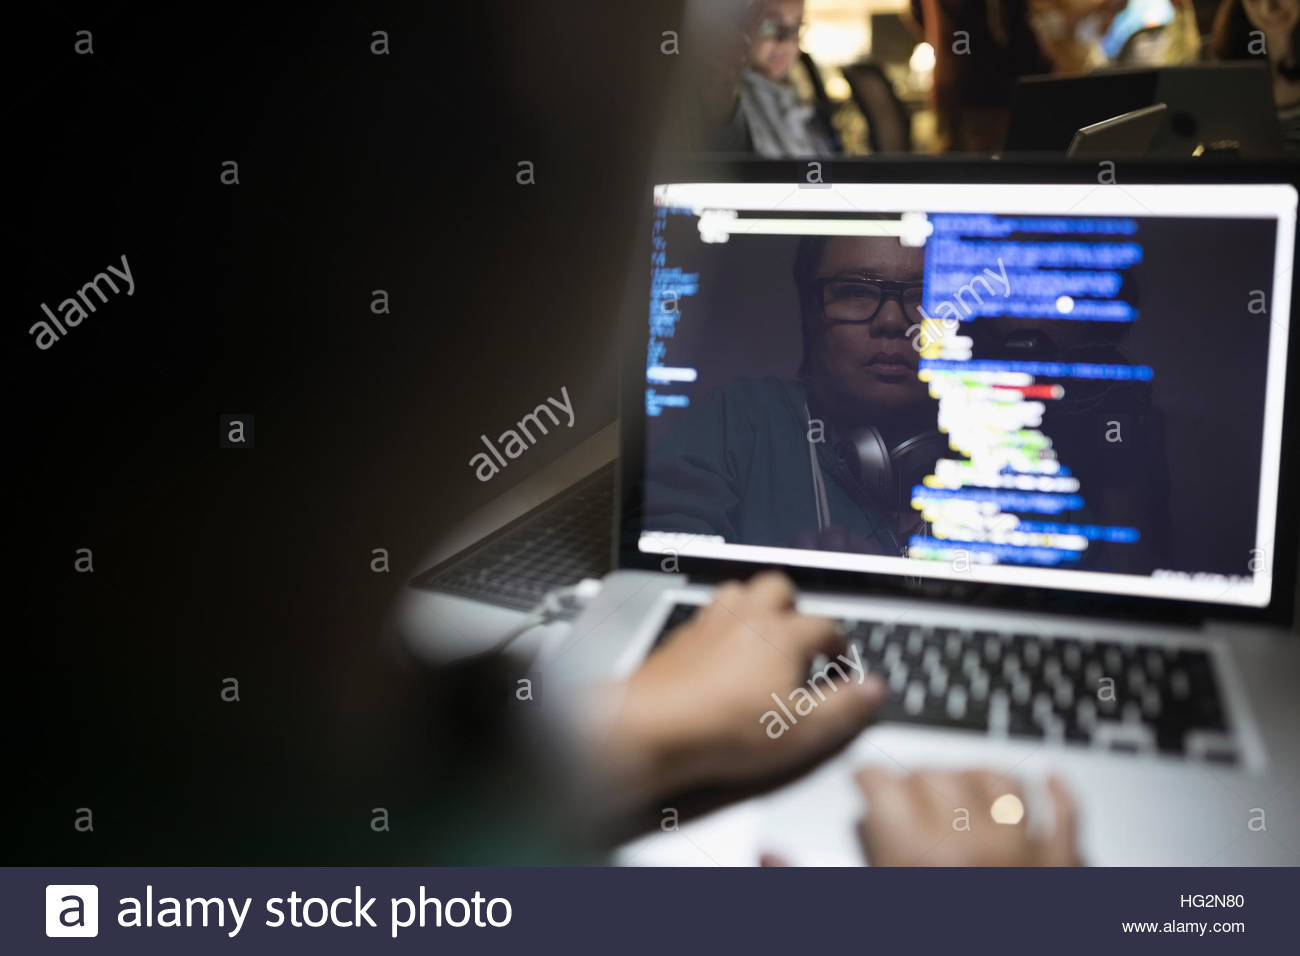 Reflection of female hacker coding working hackathon at laptop - Stock Image